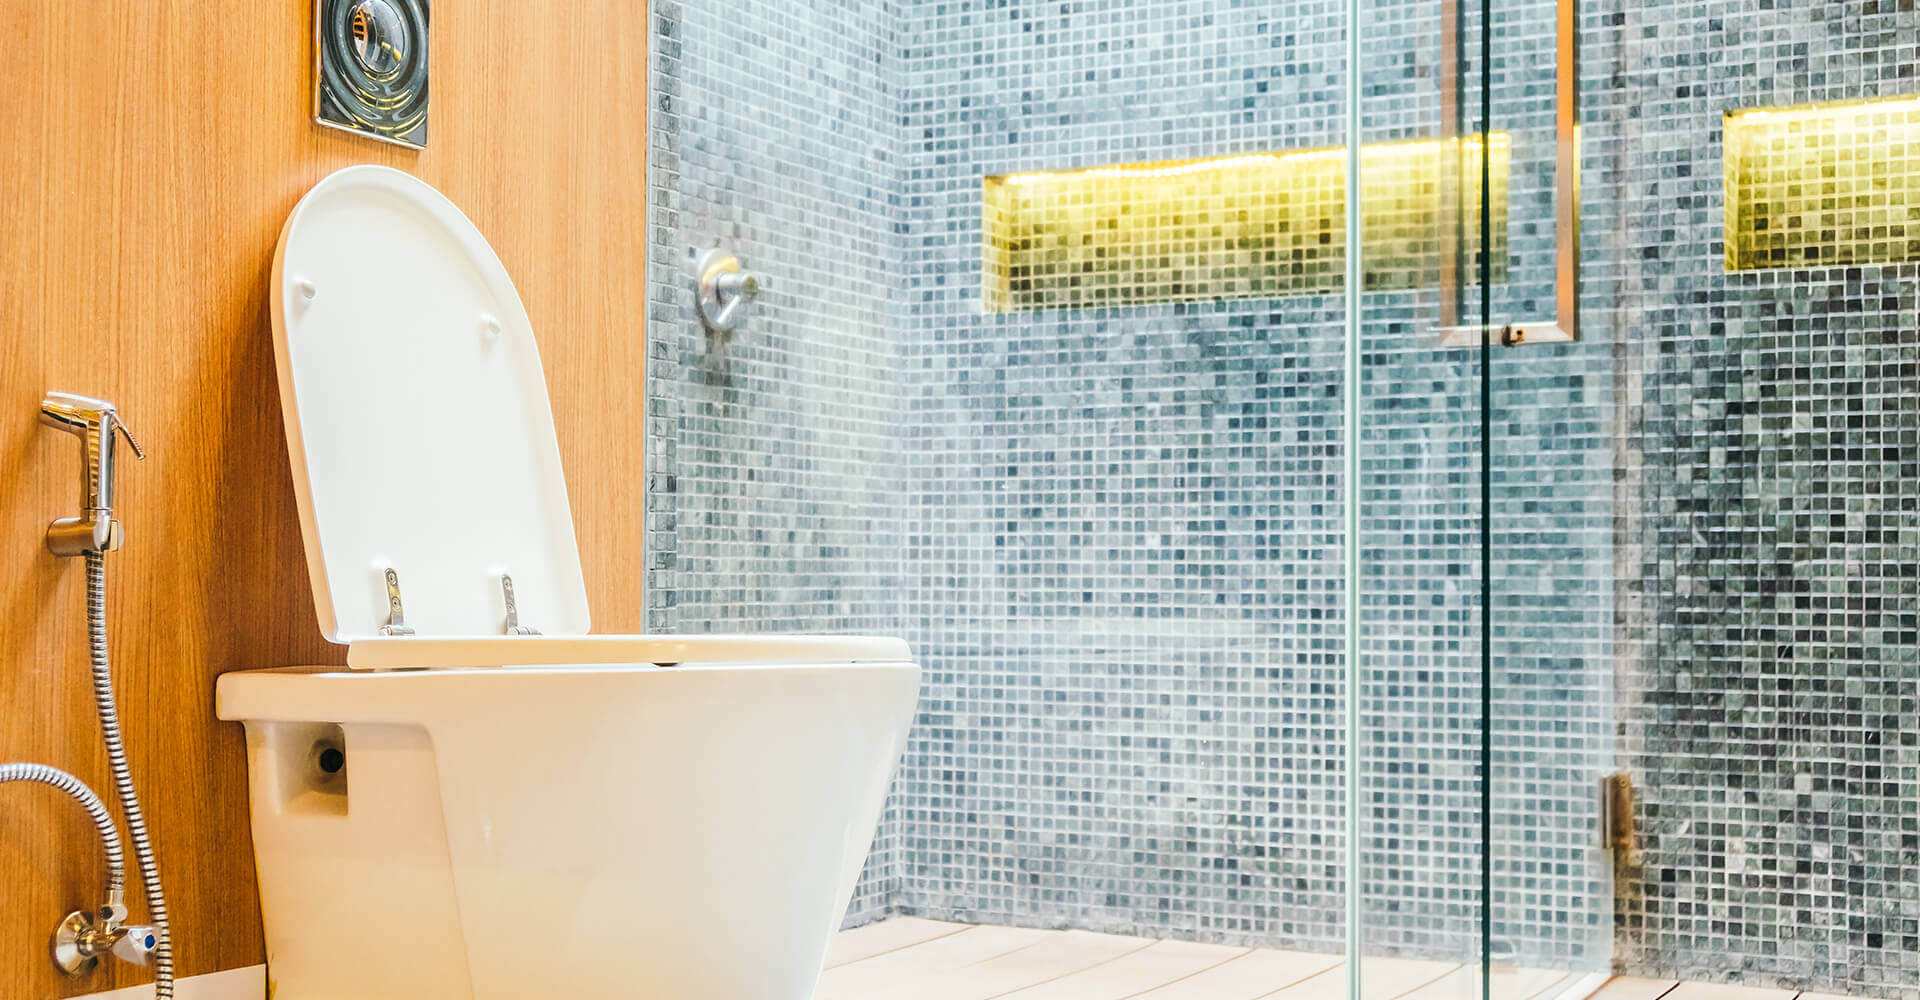 Wondrous Cleaning Services Melbourne Tile And Grout Cleaning Home Interior And Landscaping Ologienasavecom